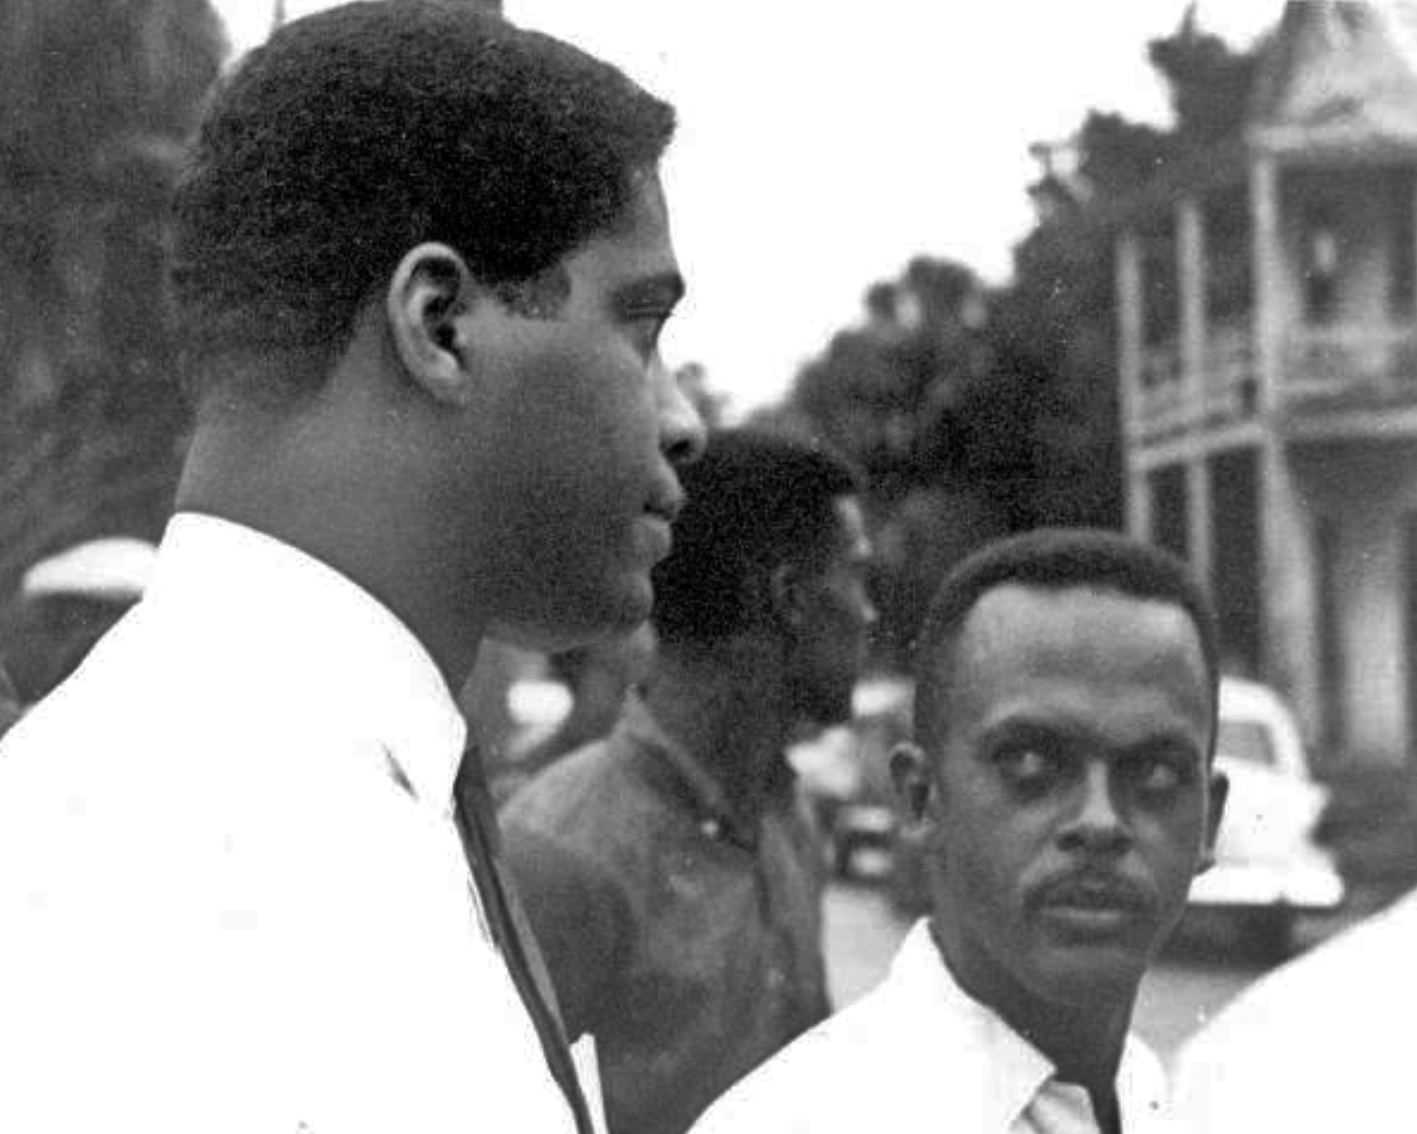 [STATE ARCHIVES OF FLORIDA] DR. ROBERT HAYLING WITH MEMBERS OF SPLC 1964.png